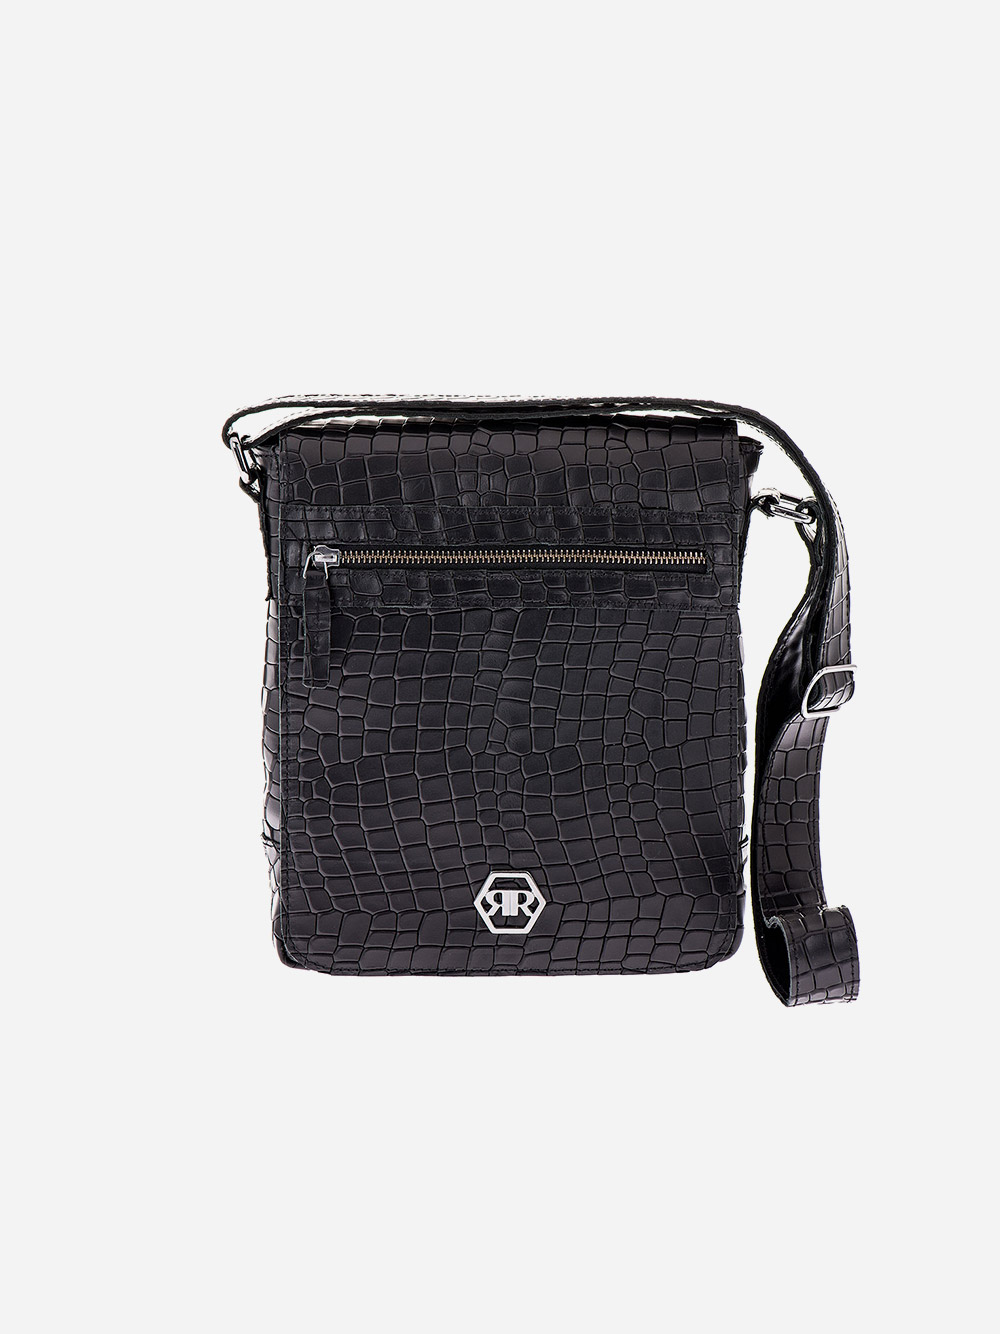 Black Croc Effect Crossbody Bag